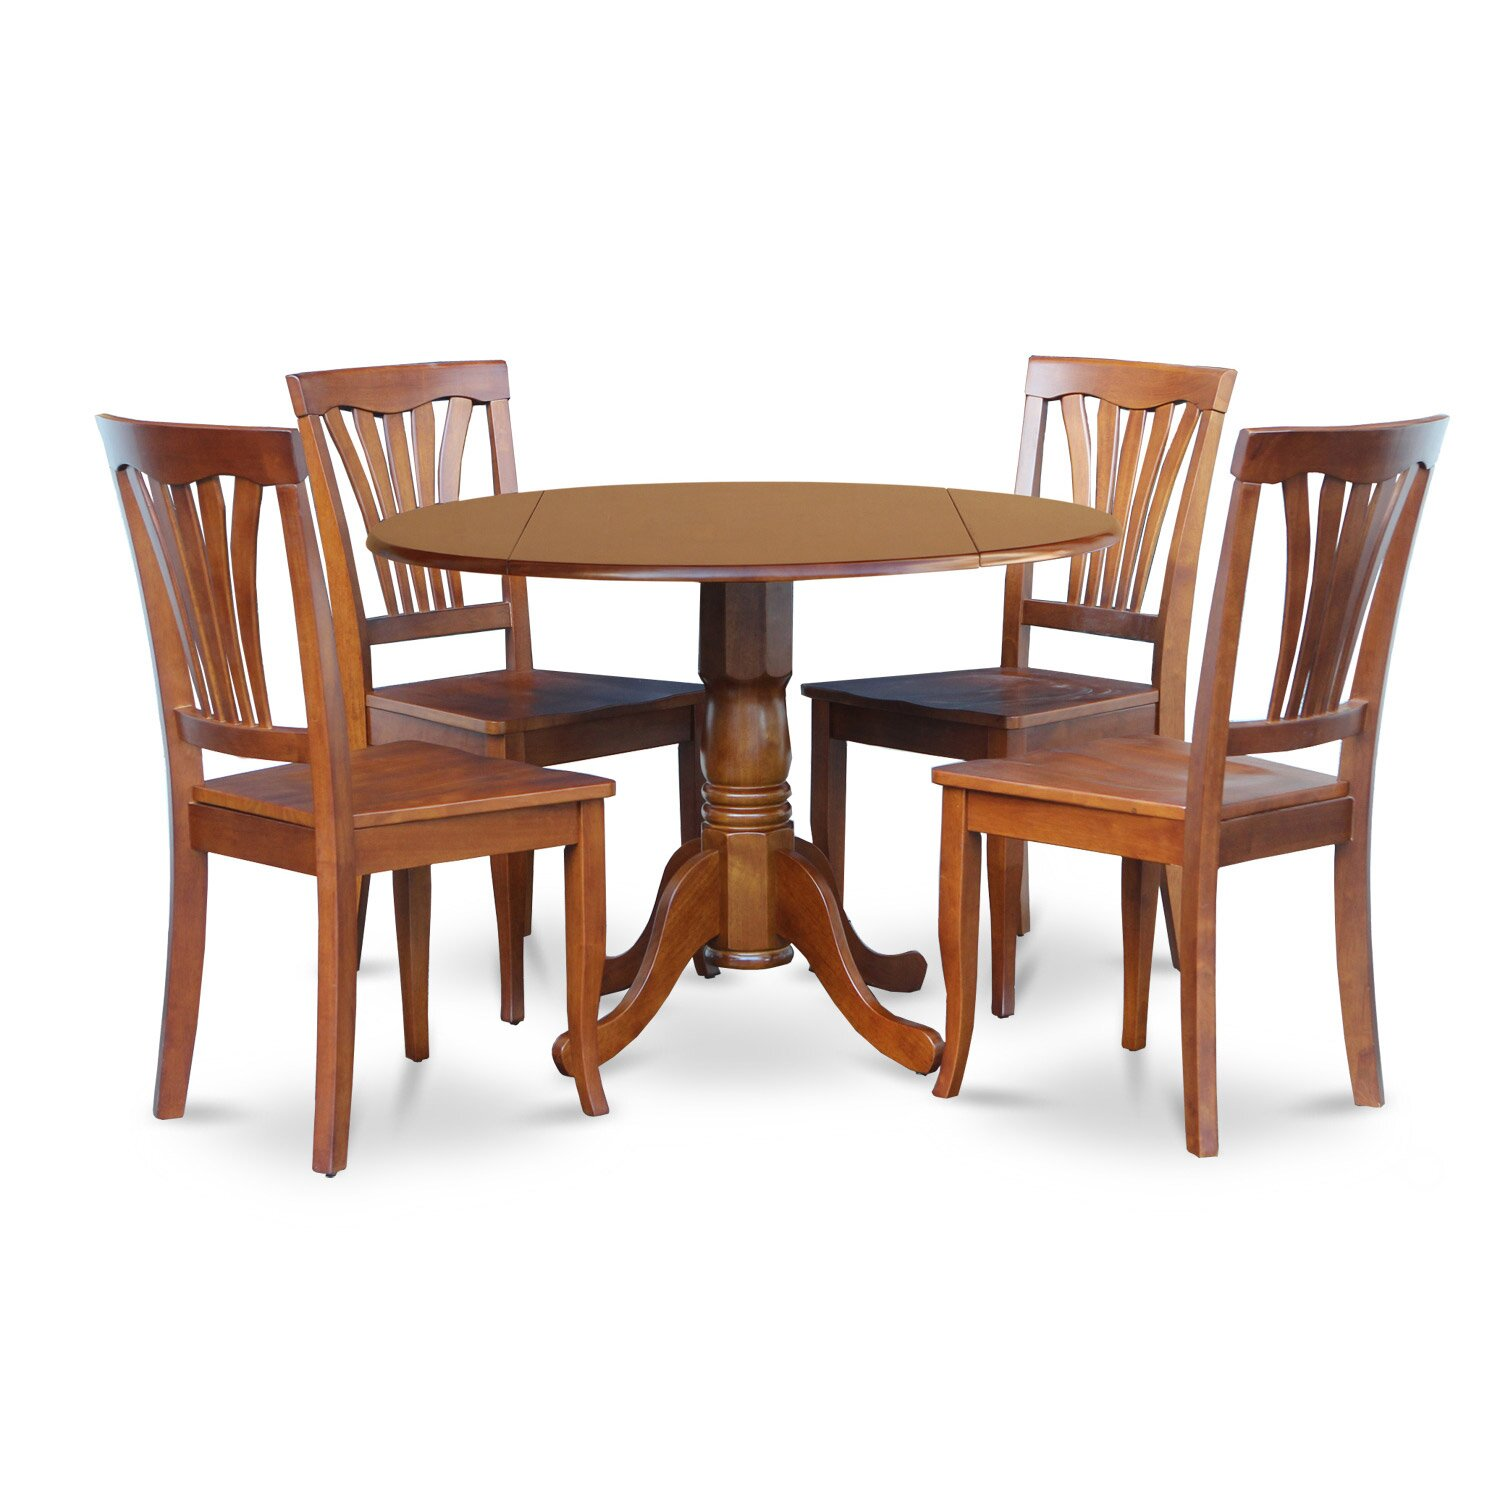 Kitchen Table And Chairs Dublin: Dublin 5 Piece Dining Set